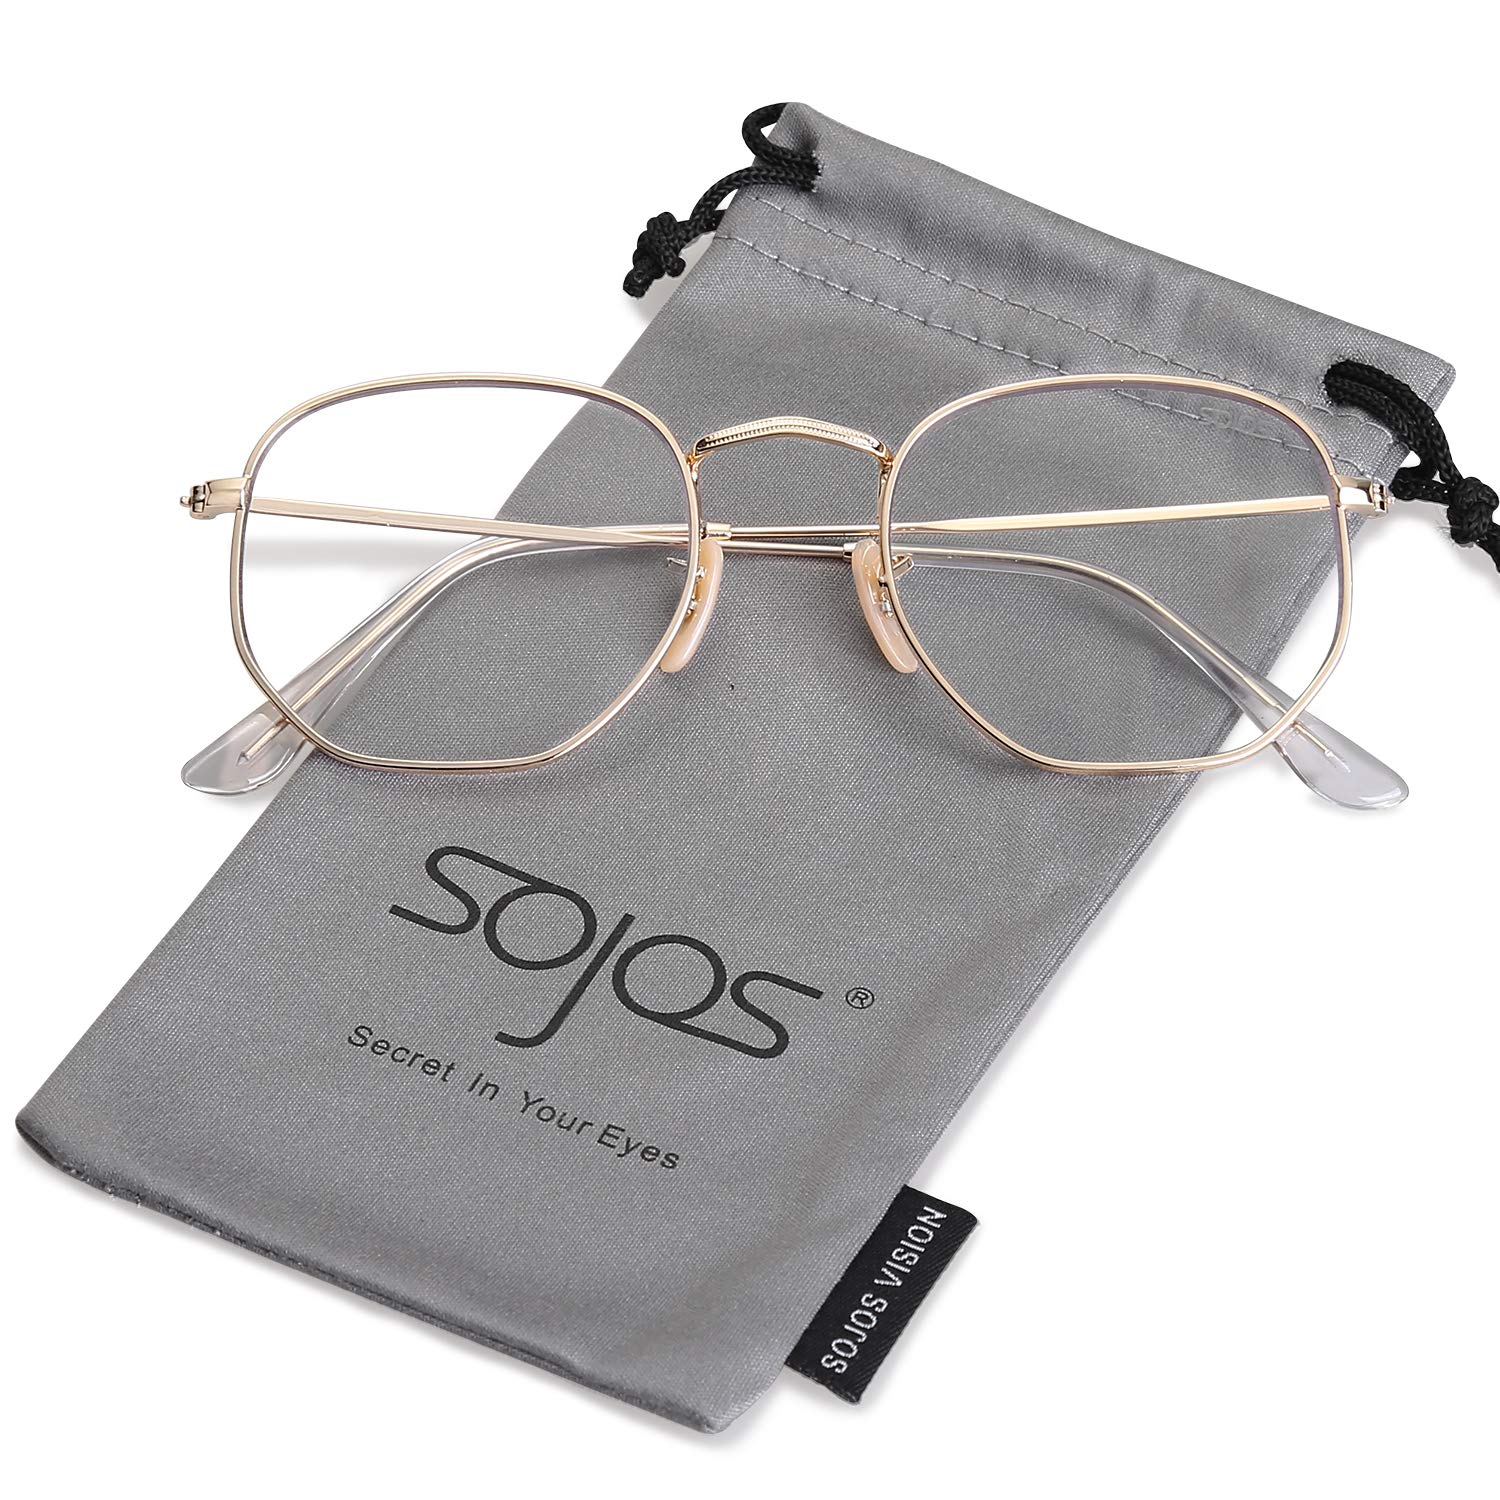 SOJOS Small Square Clear Lens Glasses for Men and Women Eyewear Eyeglasses SJ1072 with Gold Frame/Clear Lens